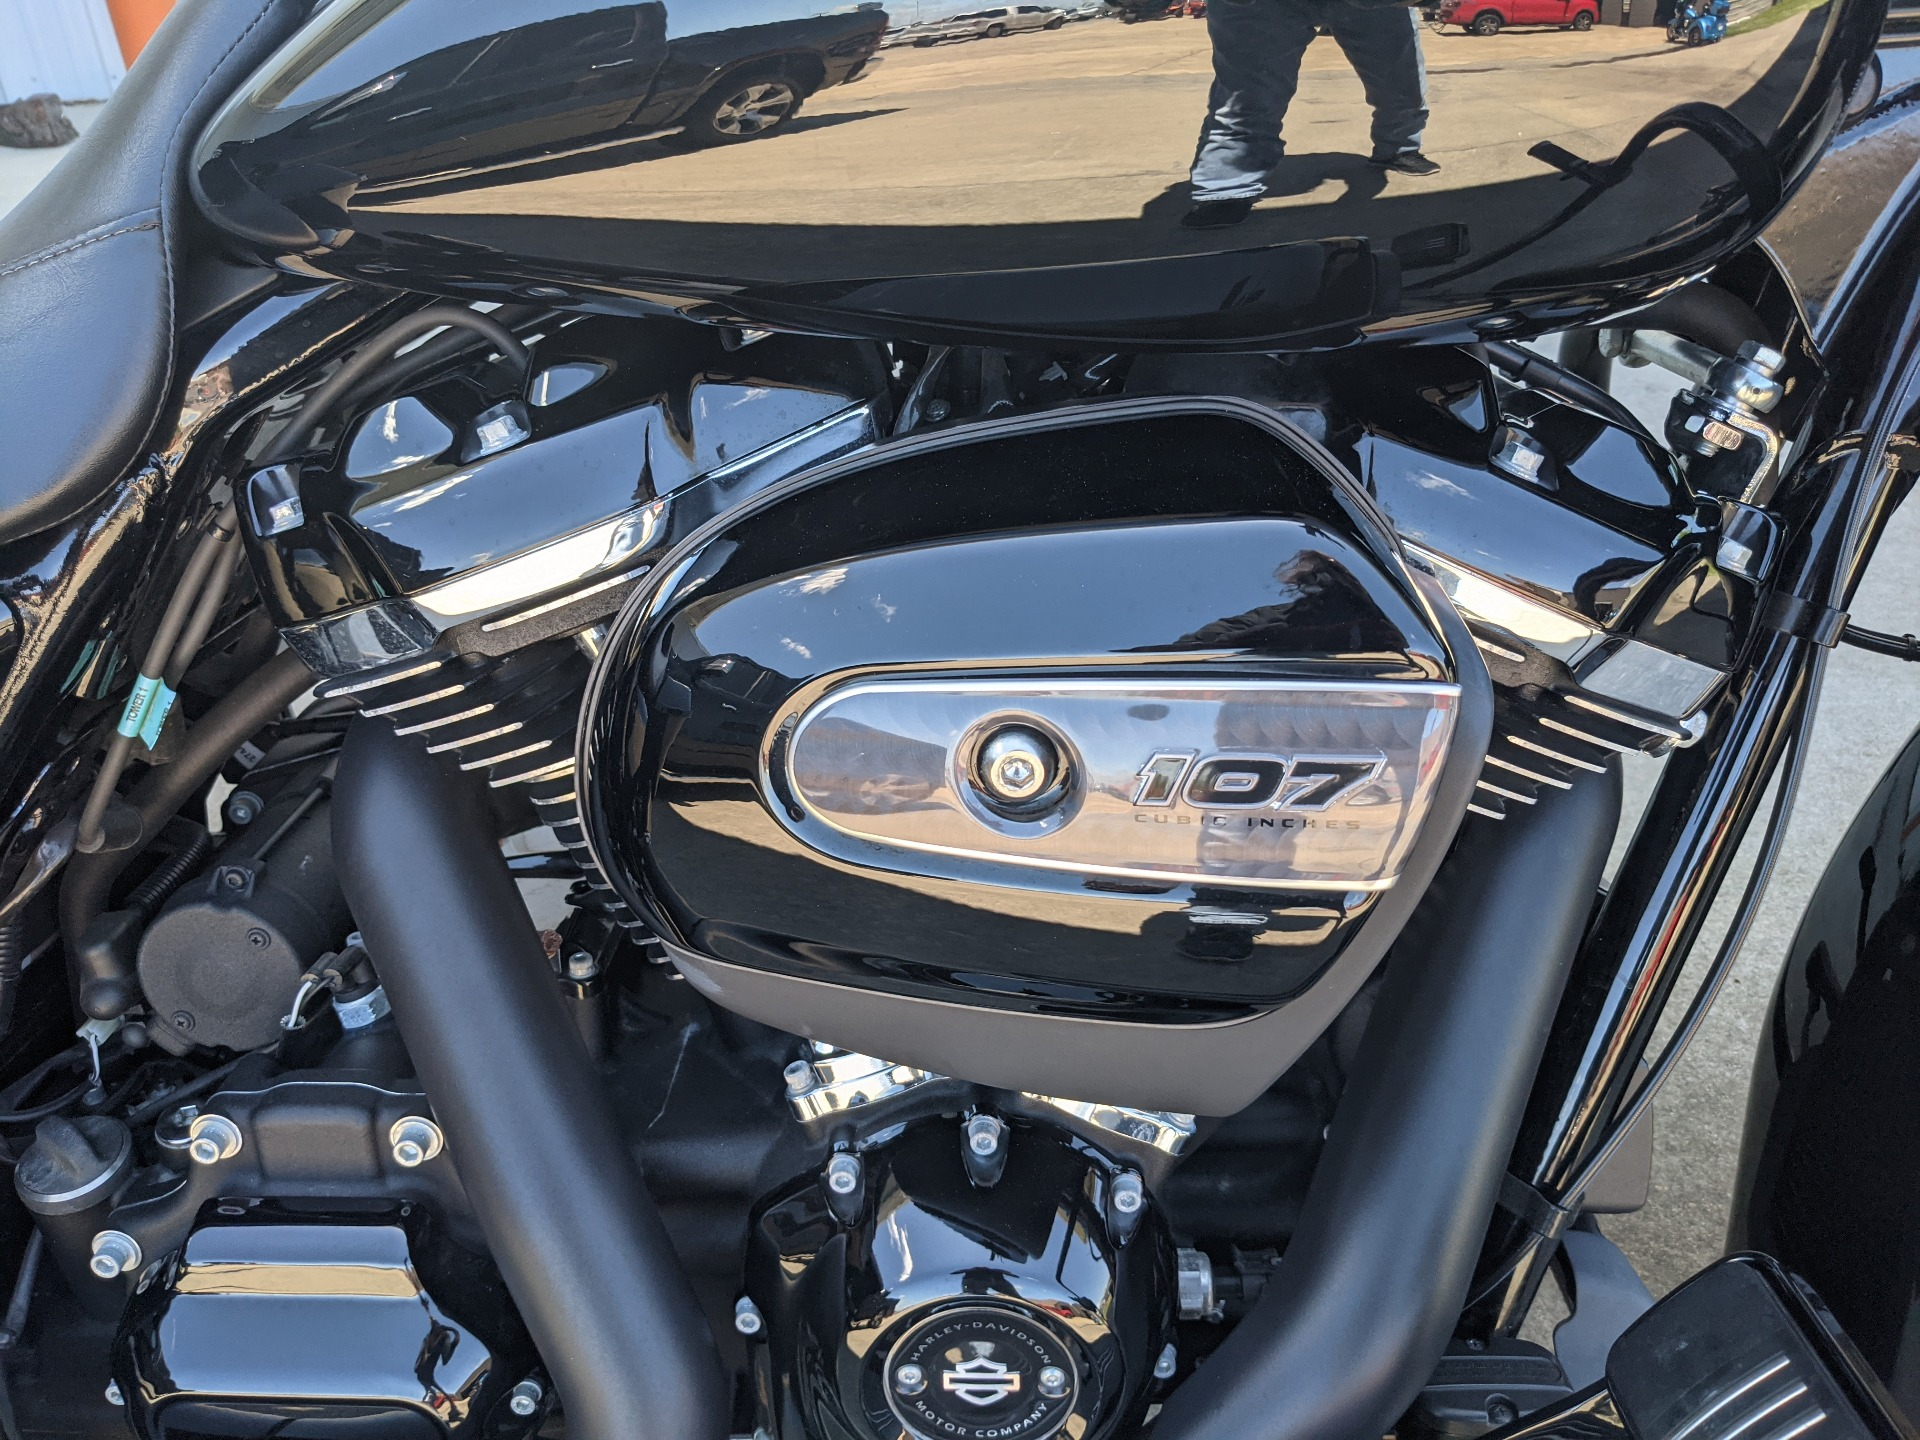 2018 Harley Road King Special For Sale - Photo 13